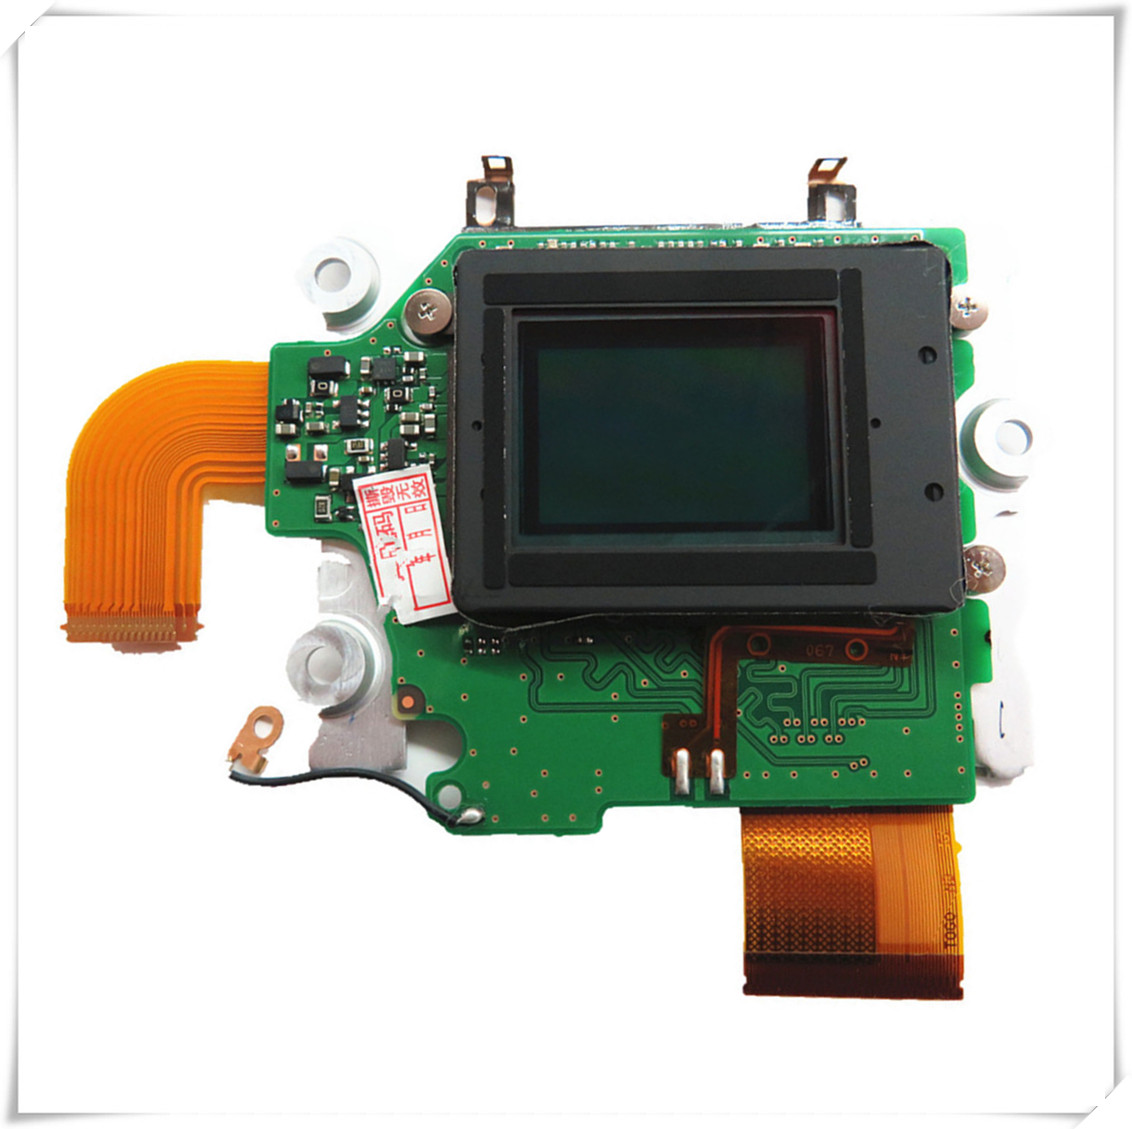 100% Original D7200 CCD CMOS Image Sensor With Perfectly Low Pass filter Glass For Nikon D7200 fpga based intellegent sensor for image processing